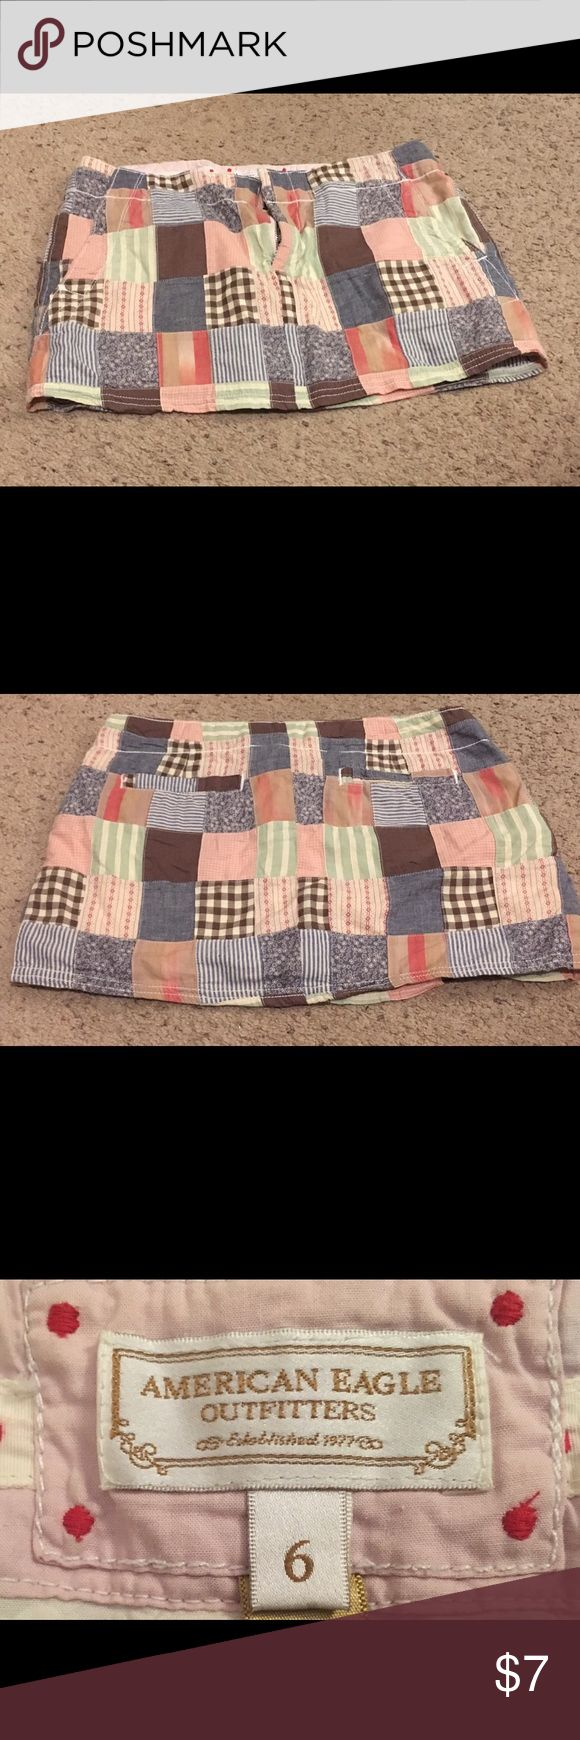 American Eagle plaid mini skirt size 6 Adorable American Eagle mini skirt in great condition for an excellent price! Size 6 American Eagle Outfitters Skirts Mini